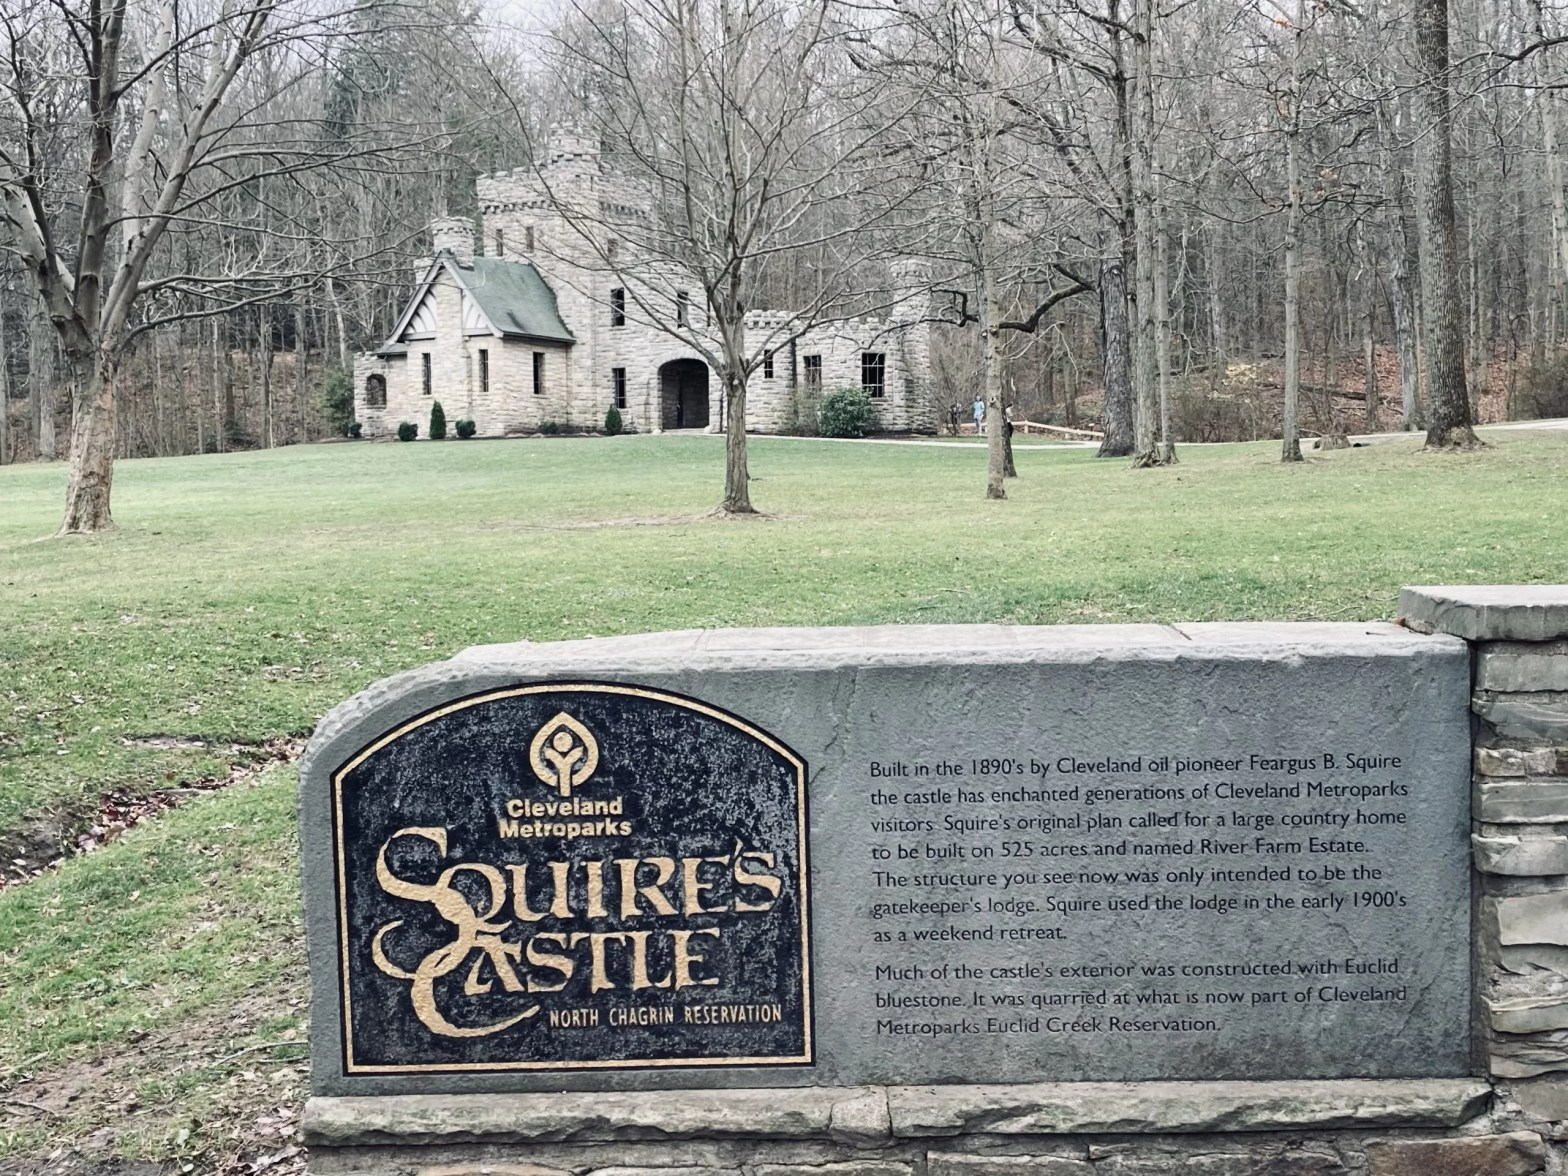 Squire's Castle with sign in the front and the gray castle in the background